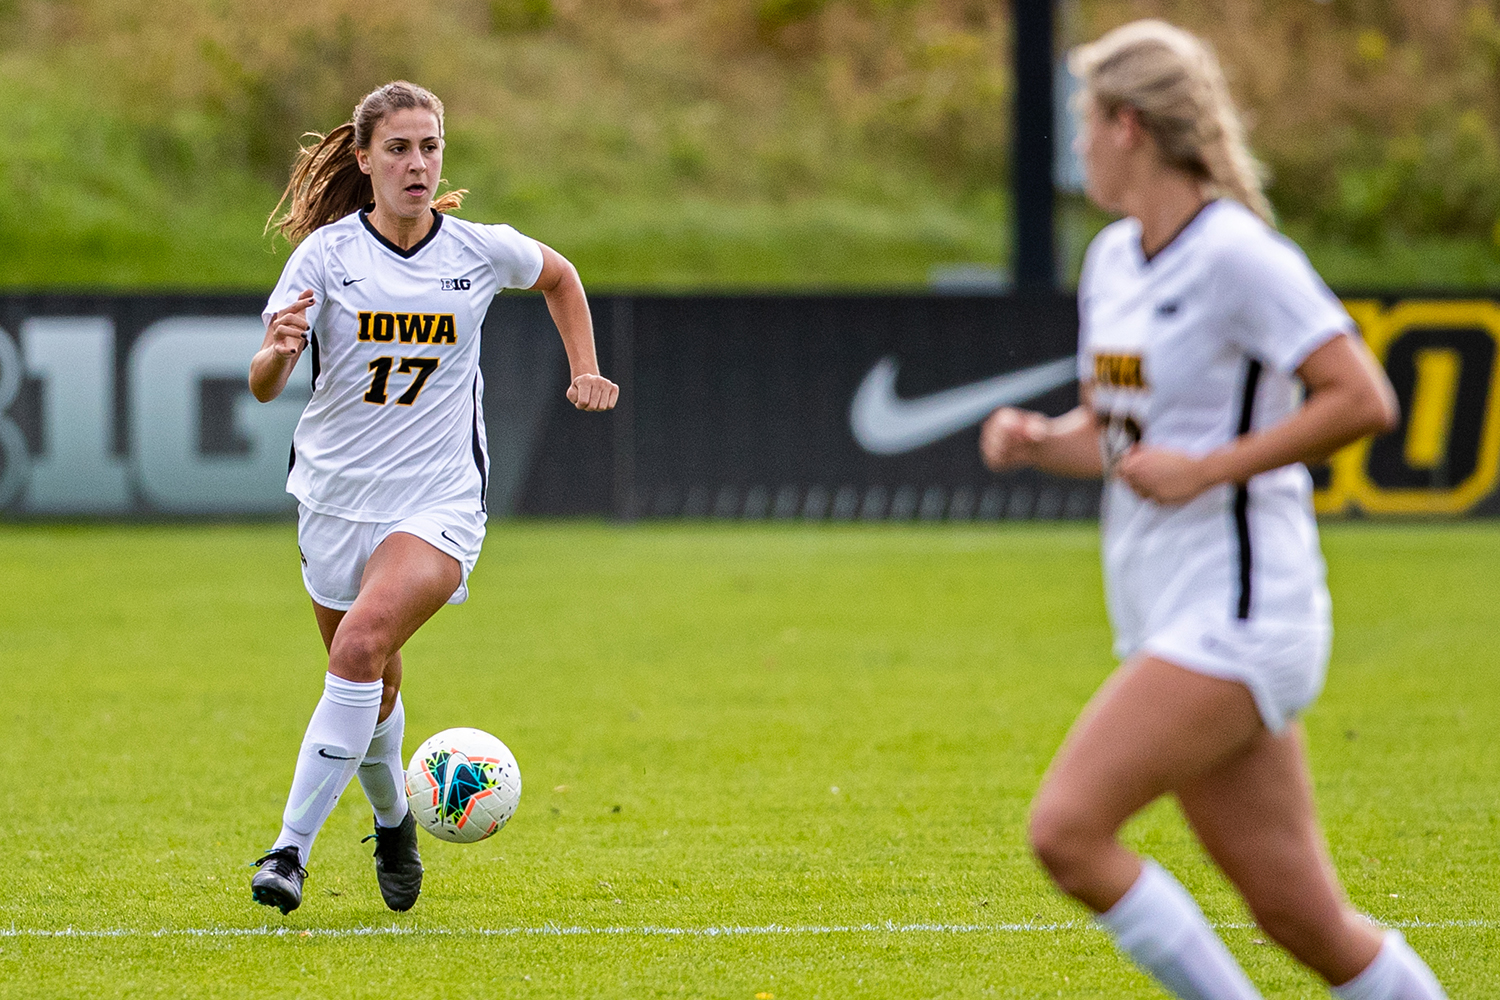 Iowa defender Hannah Drkulec looks to pass during a women's soccer match between Iowa and Maryland at the Iowa Soccer Complex on Sunday, October 13, 2019. The Hawkeyes shut out the Terrapins, 4-0. (Shivansh Ahuja/The Daily Iowan)